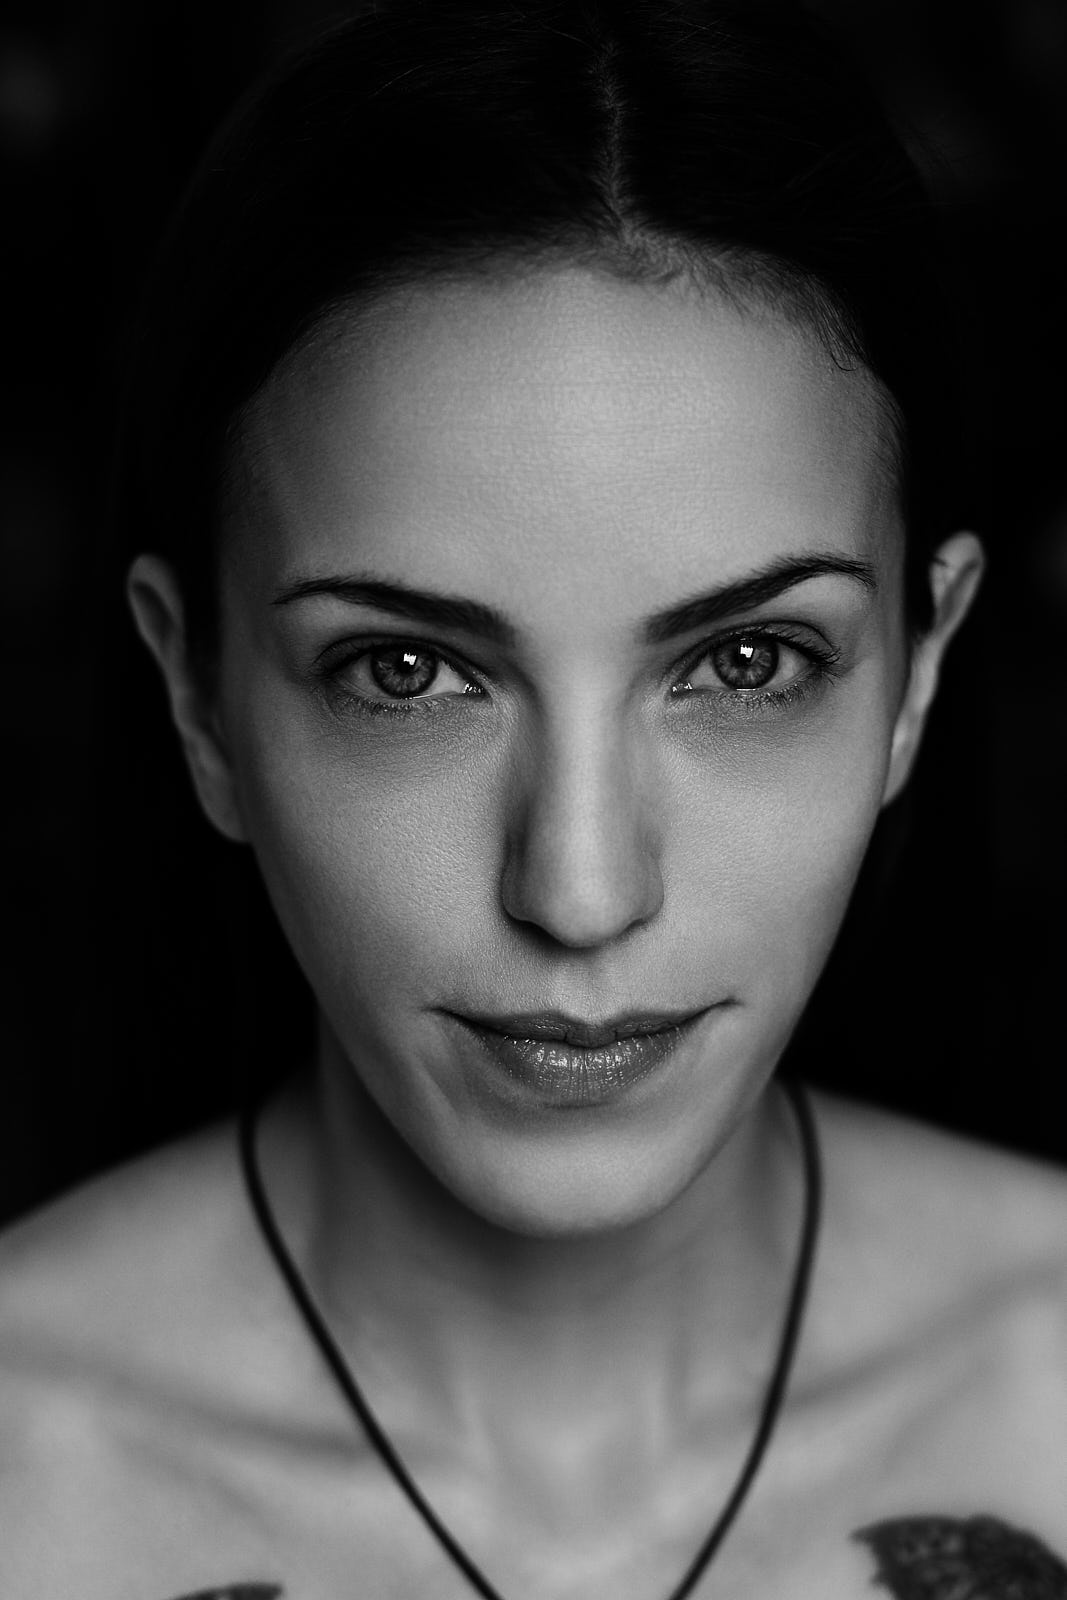 Portrait monochrome von Model Mara